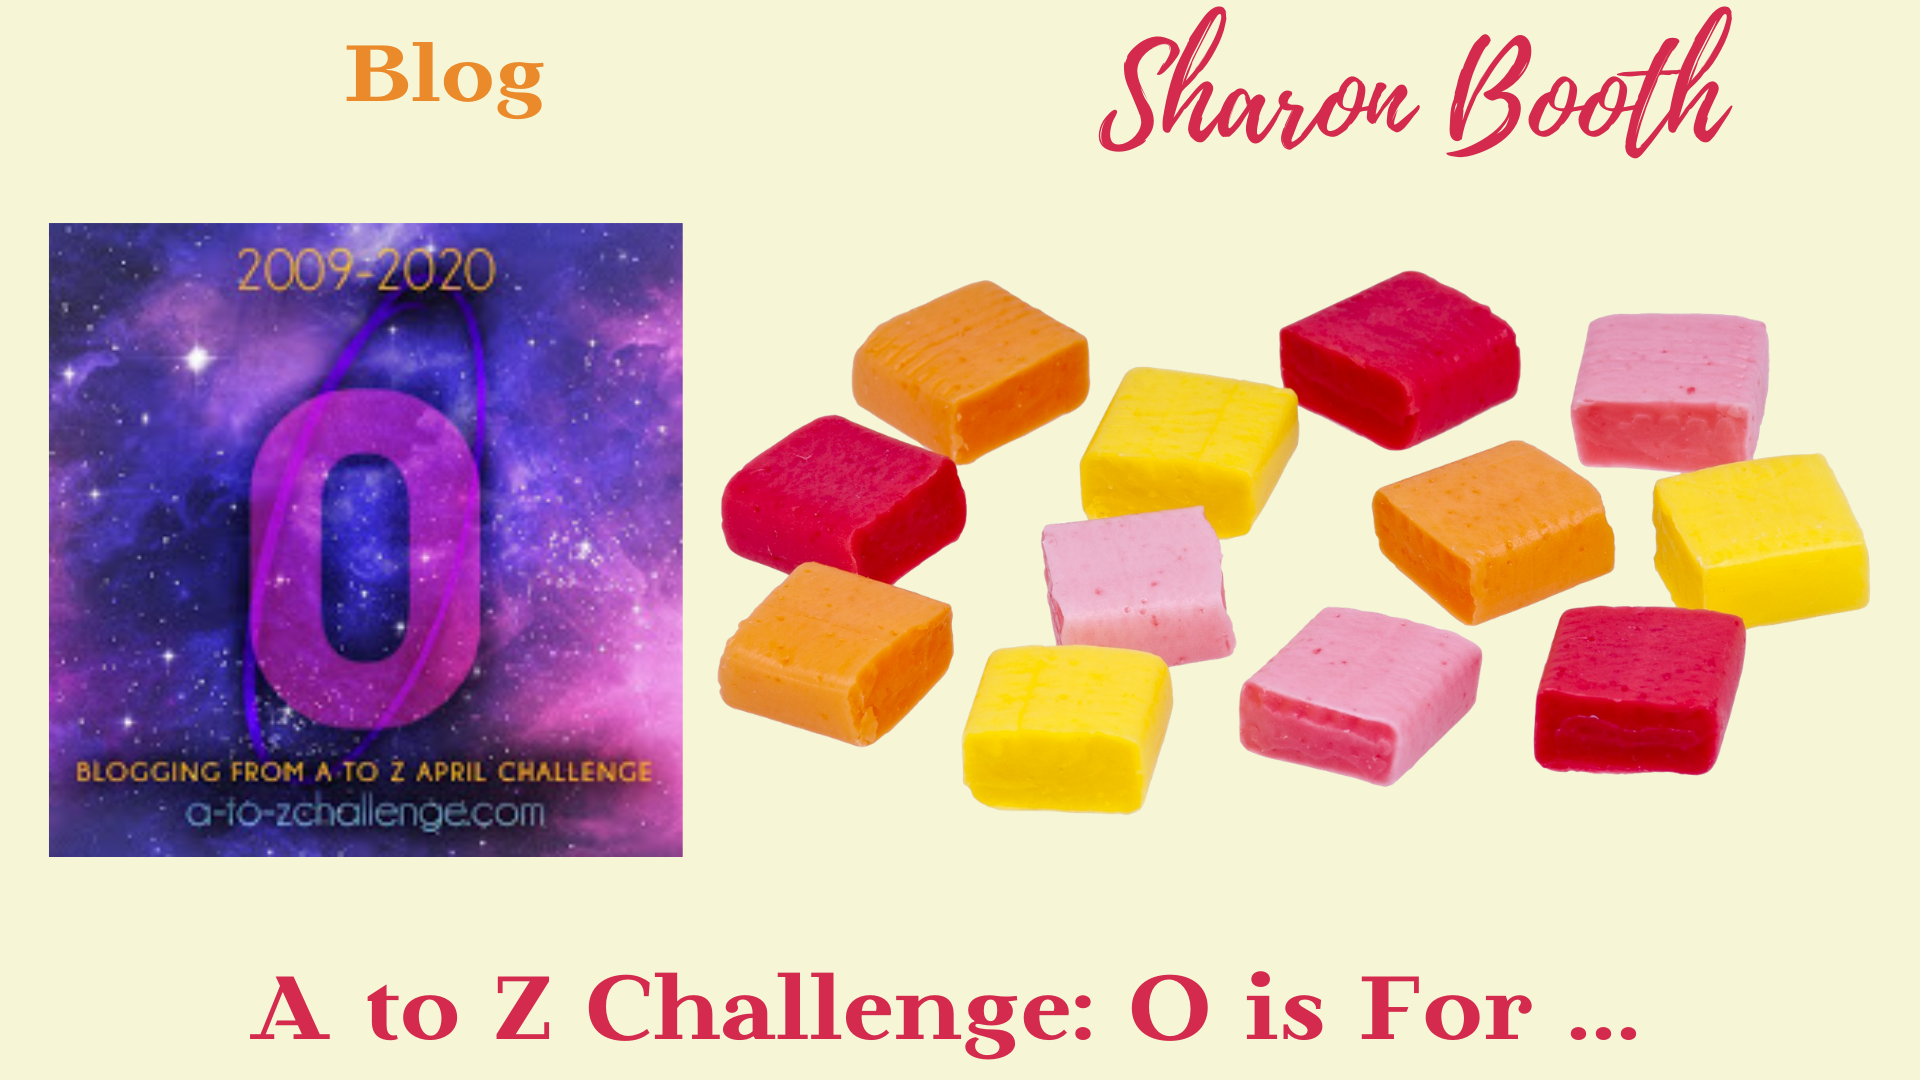 #AtoZChallenge O is For …